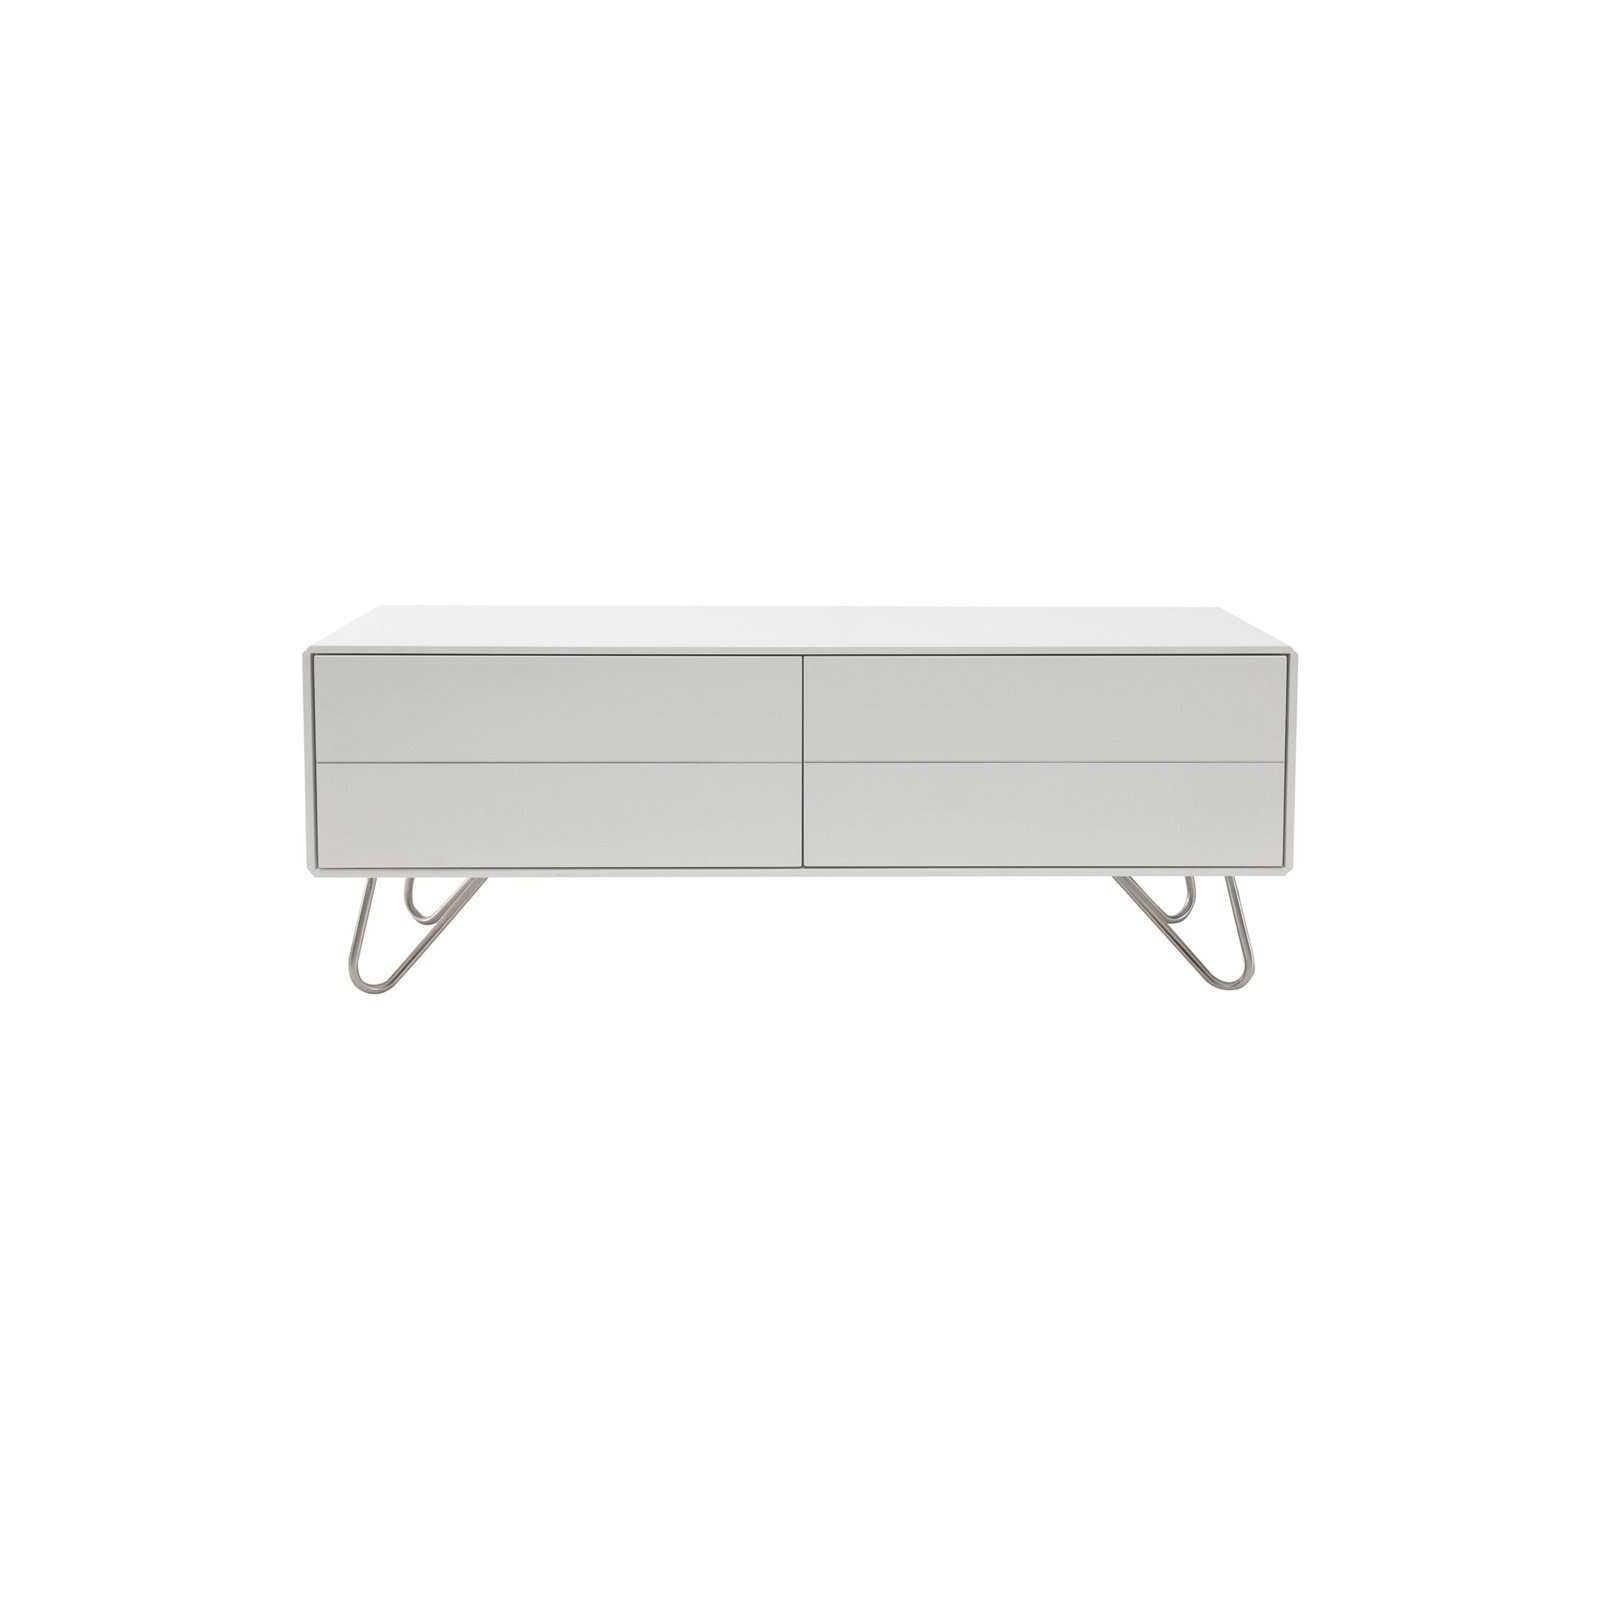 WADE 1.2M TV Cabinet In White Lacquered With Matt Silver Epoxy Leg